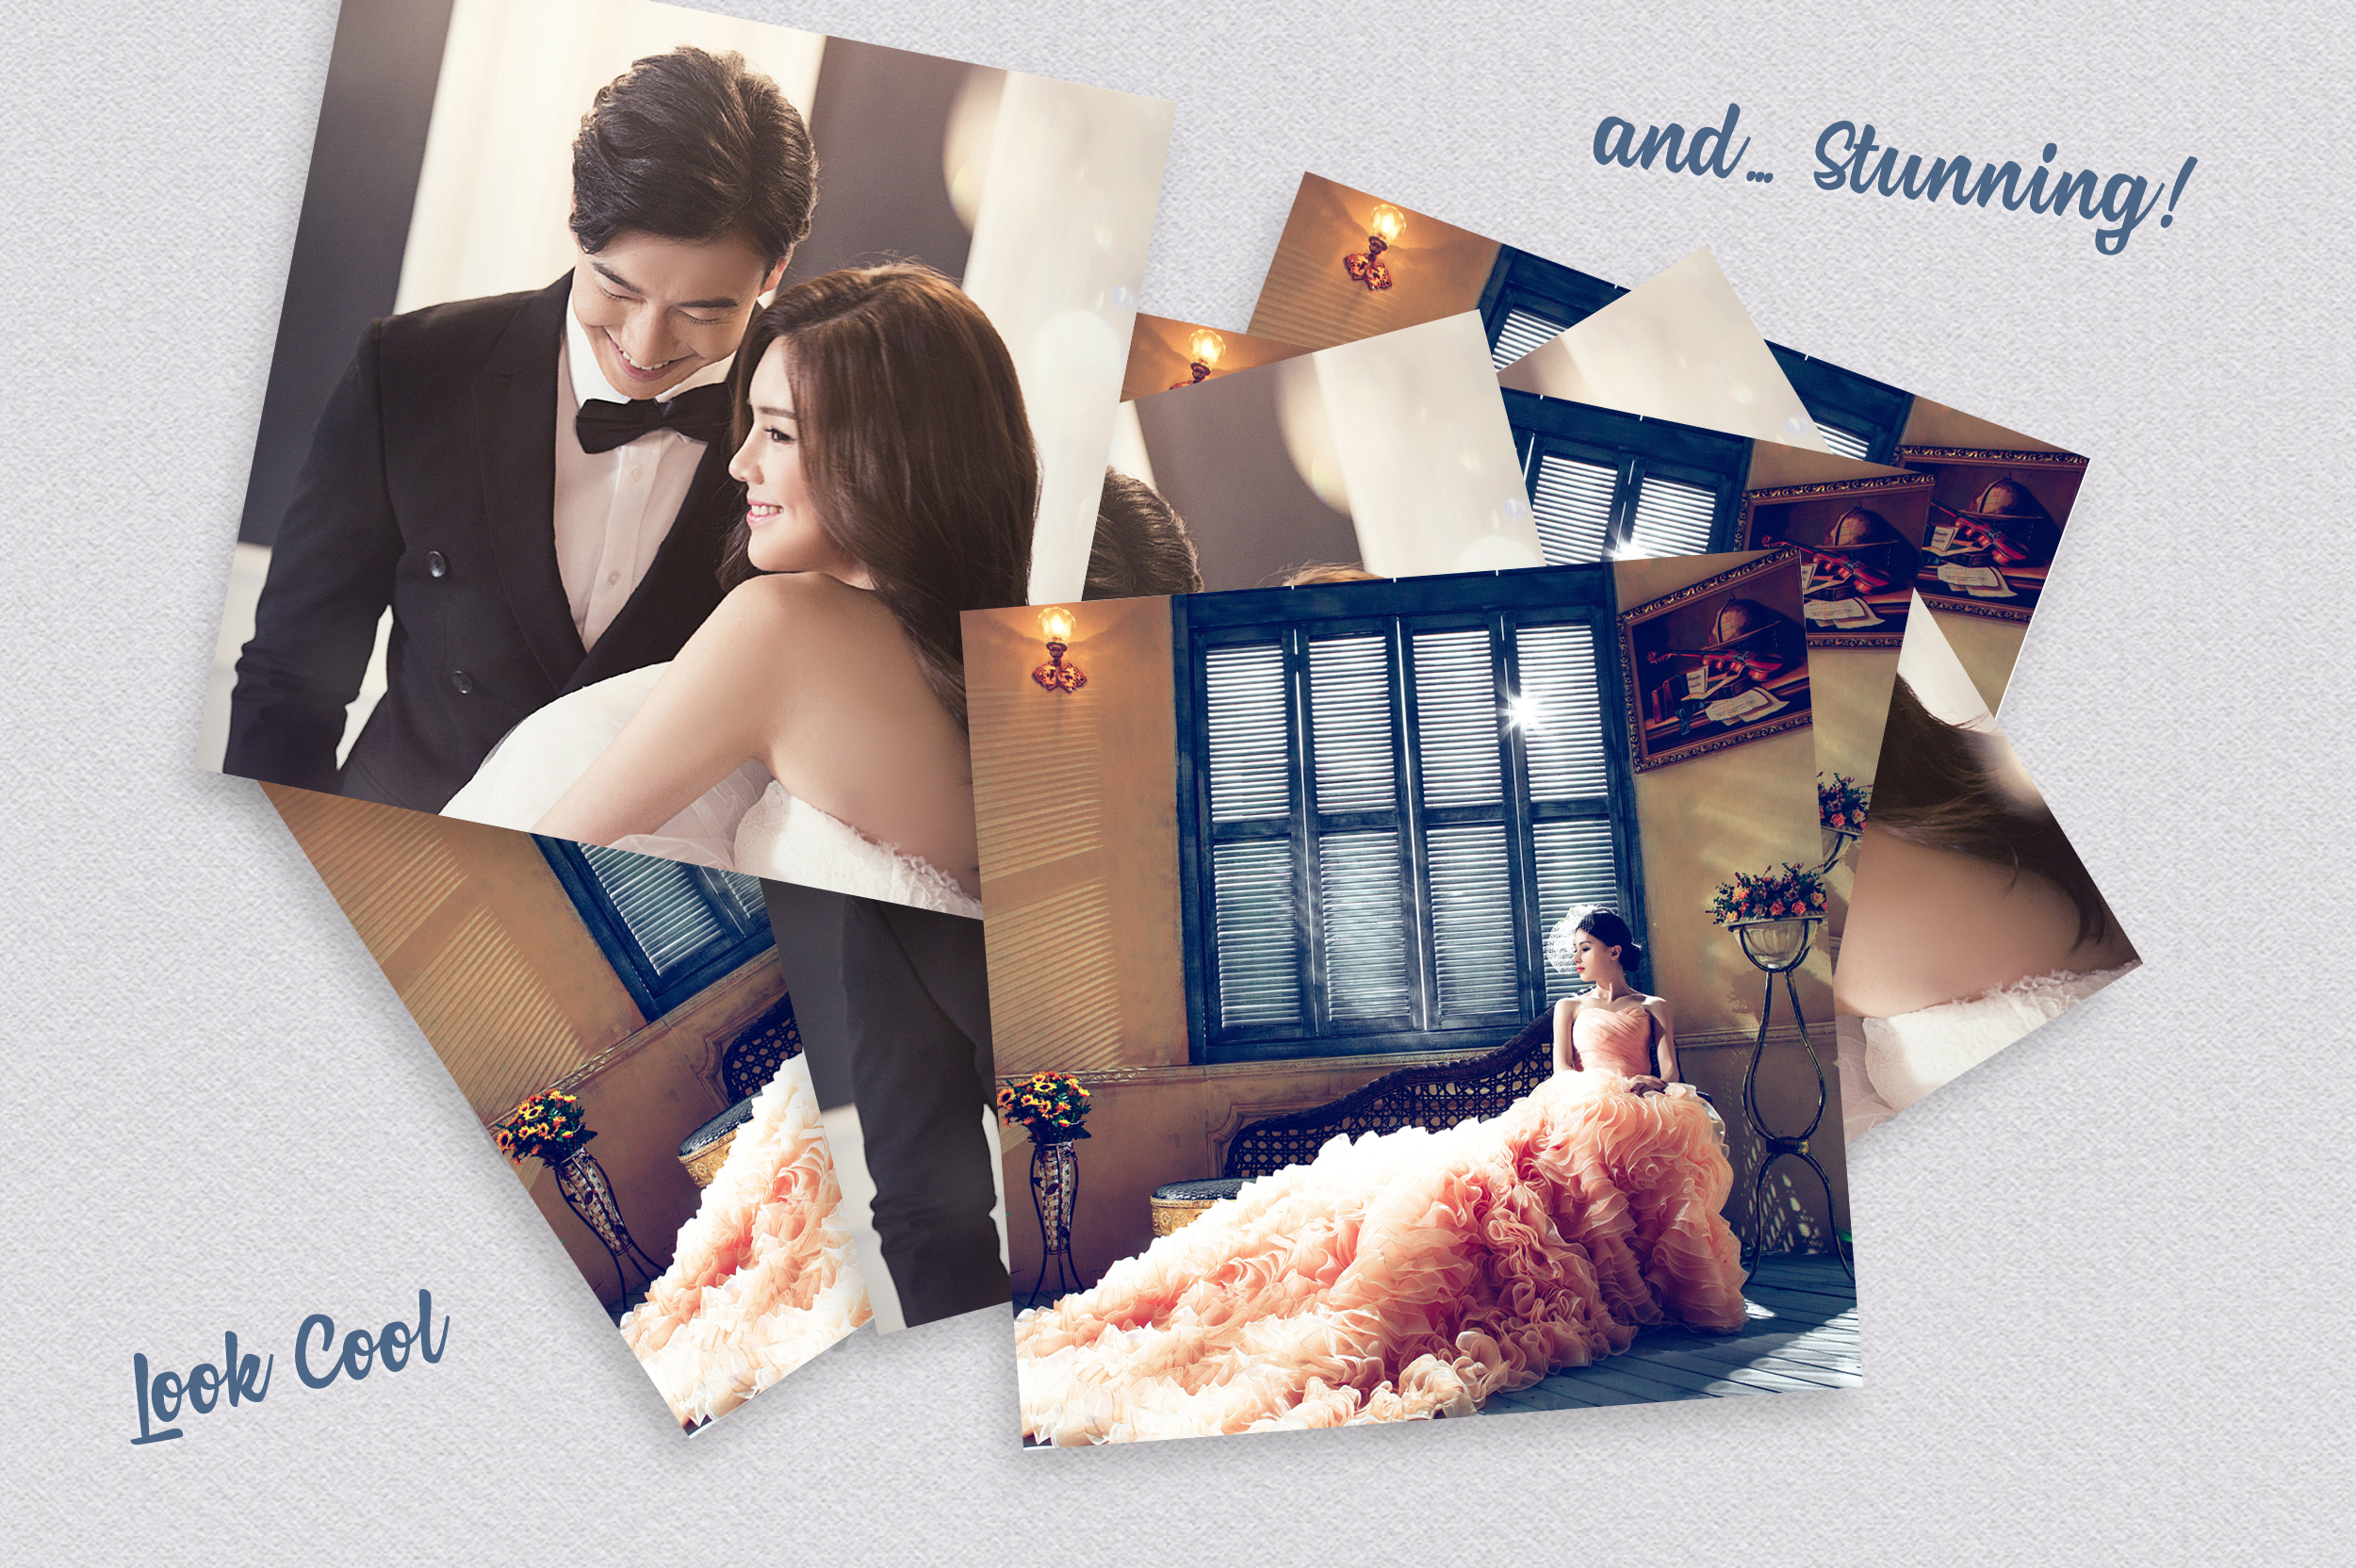 Wedding Photography Business Card example image 5